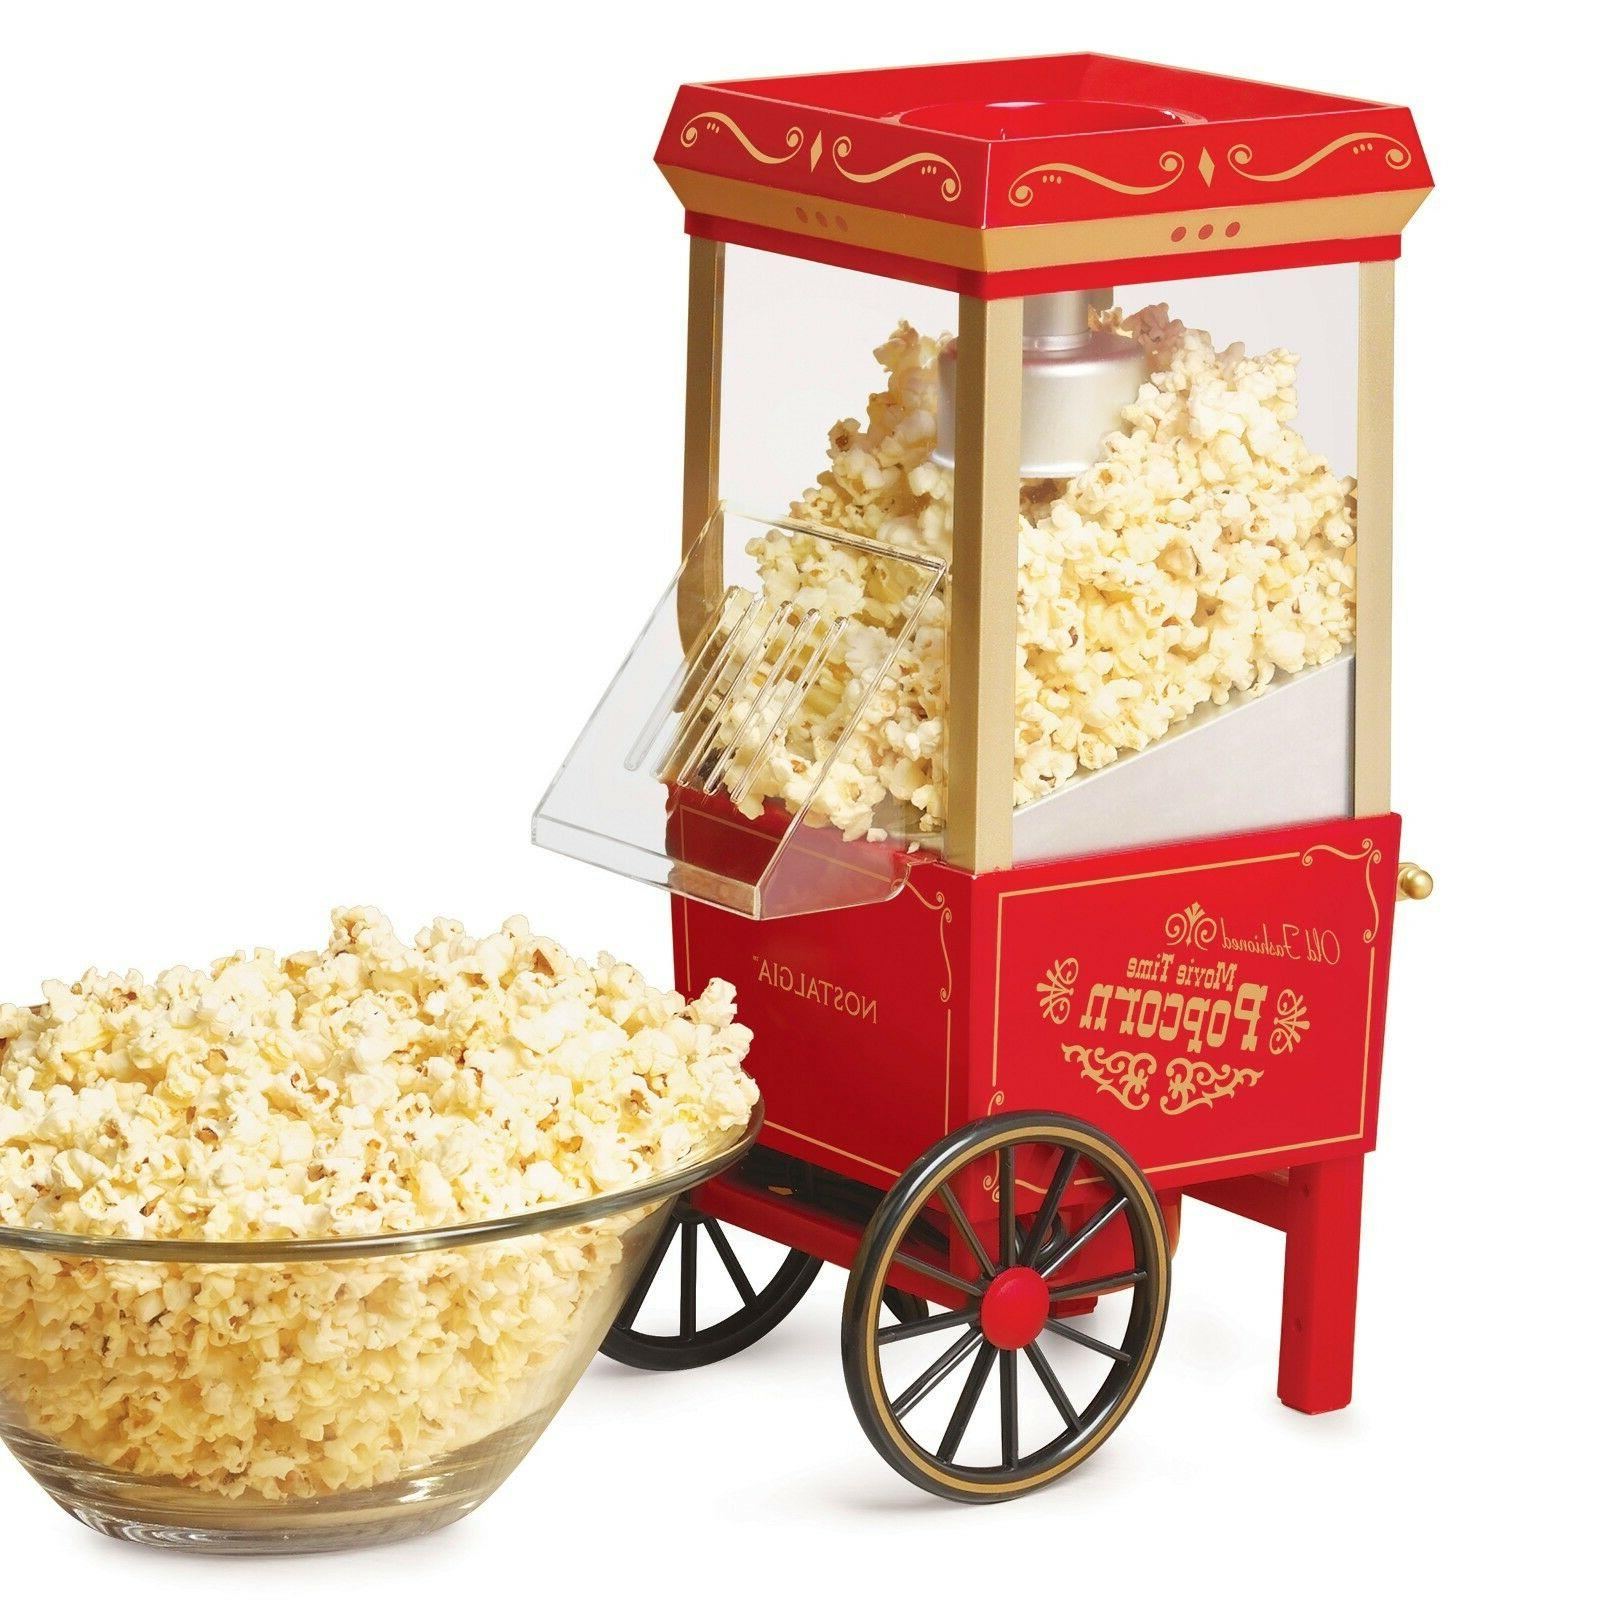 Commercial Popcorn Machine 12-Cup Hot New